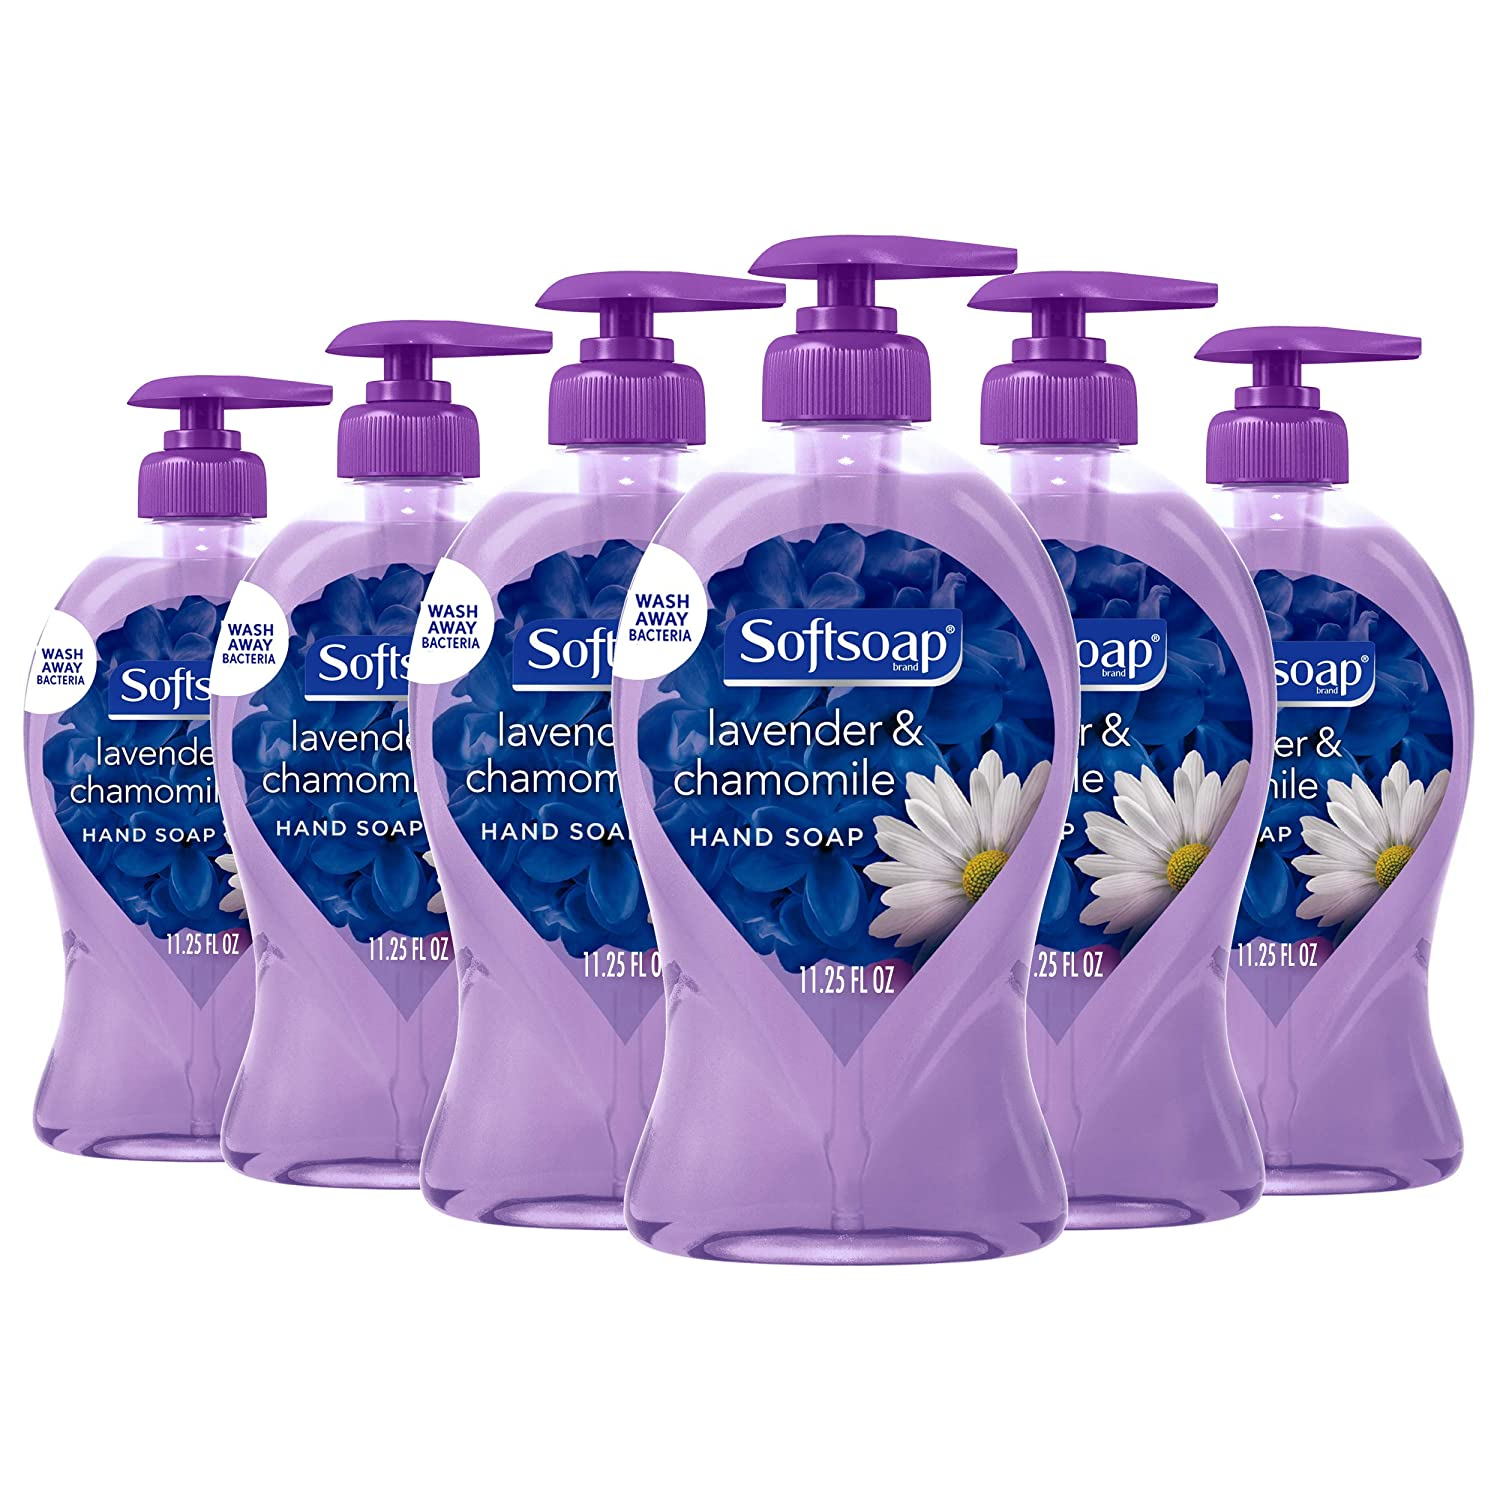 Softsoap Liquid Hand Soap, Lavender and Chamomile - 11.25 fluid ounces (6 Pack): Beauty